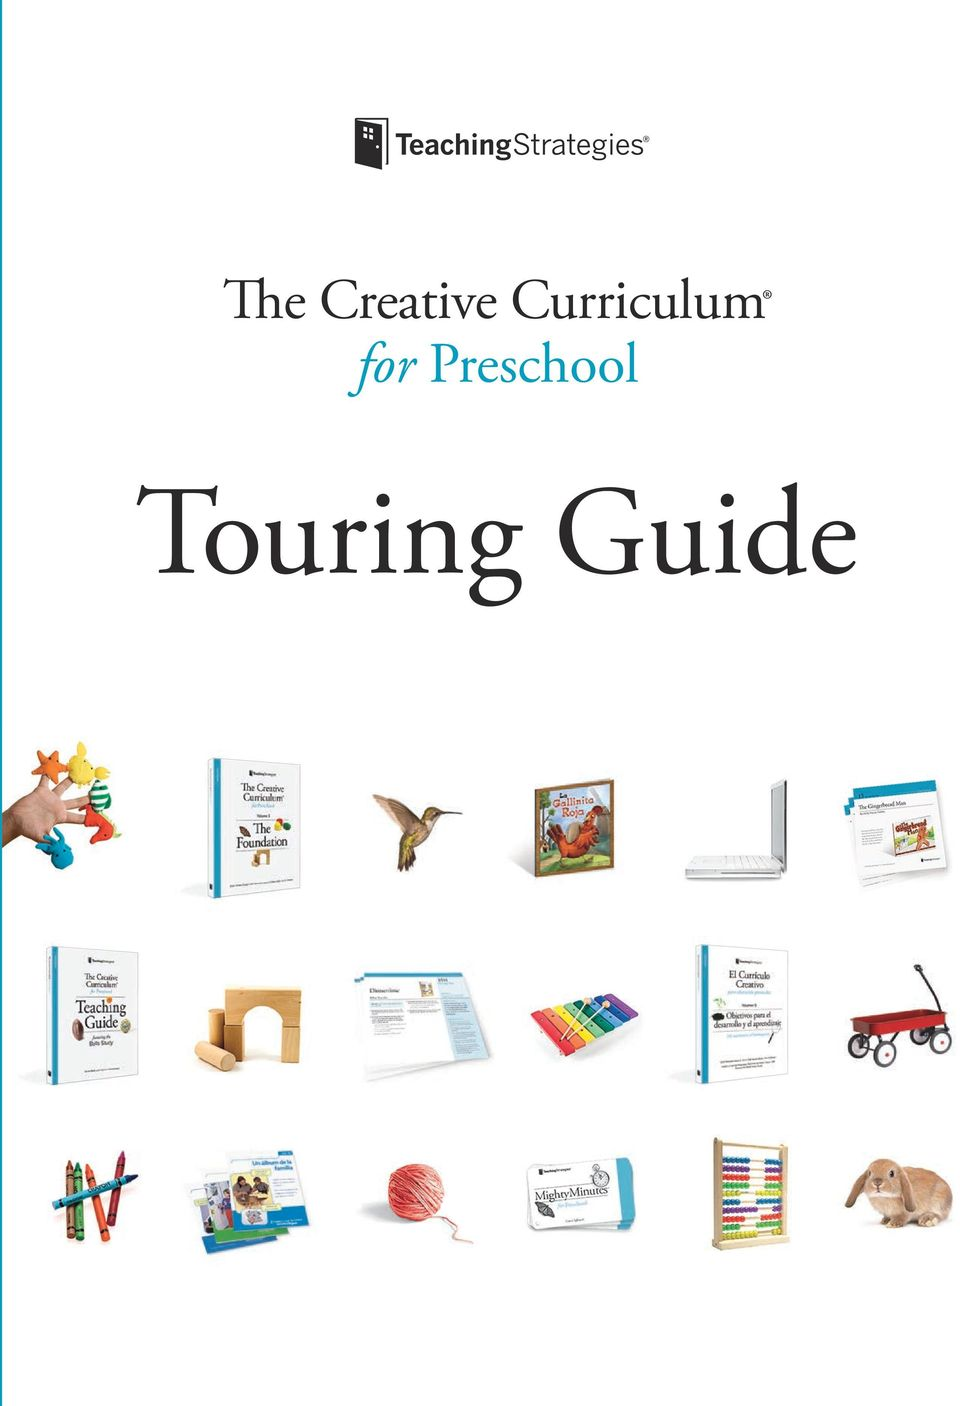 The Creative Curriculum for Preschool. Touring Guide - PDF